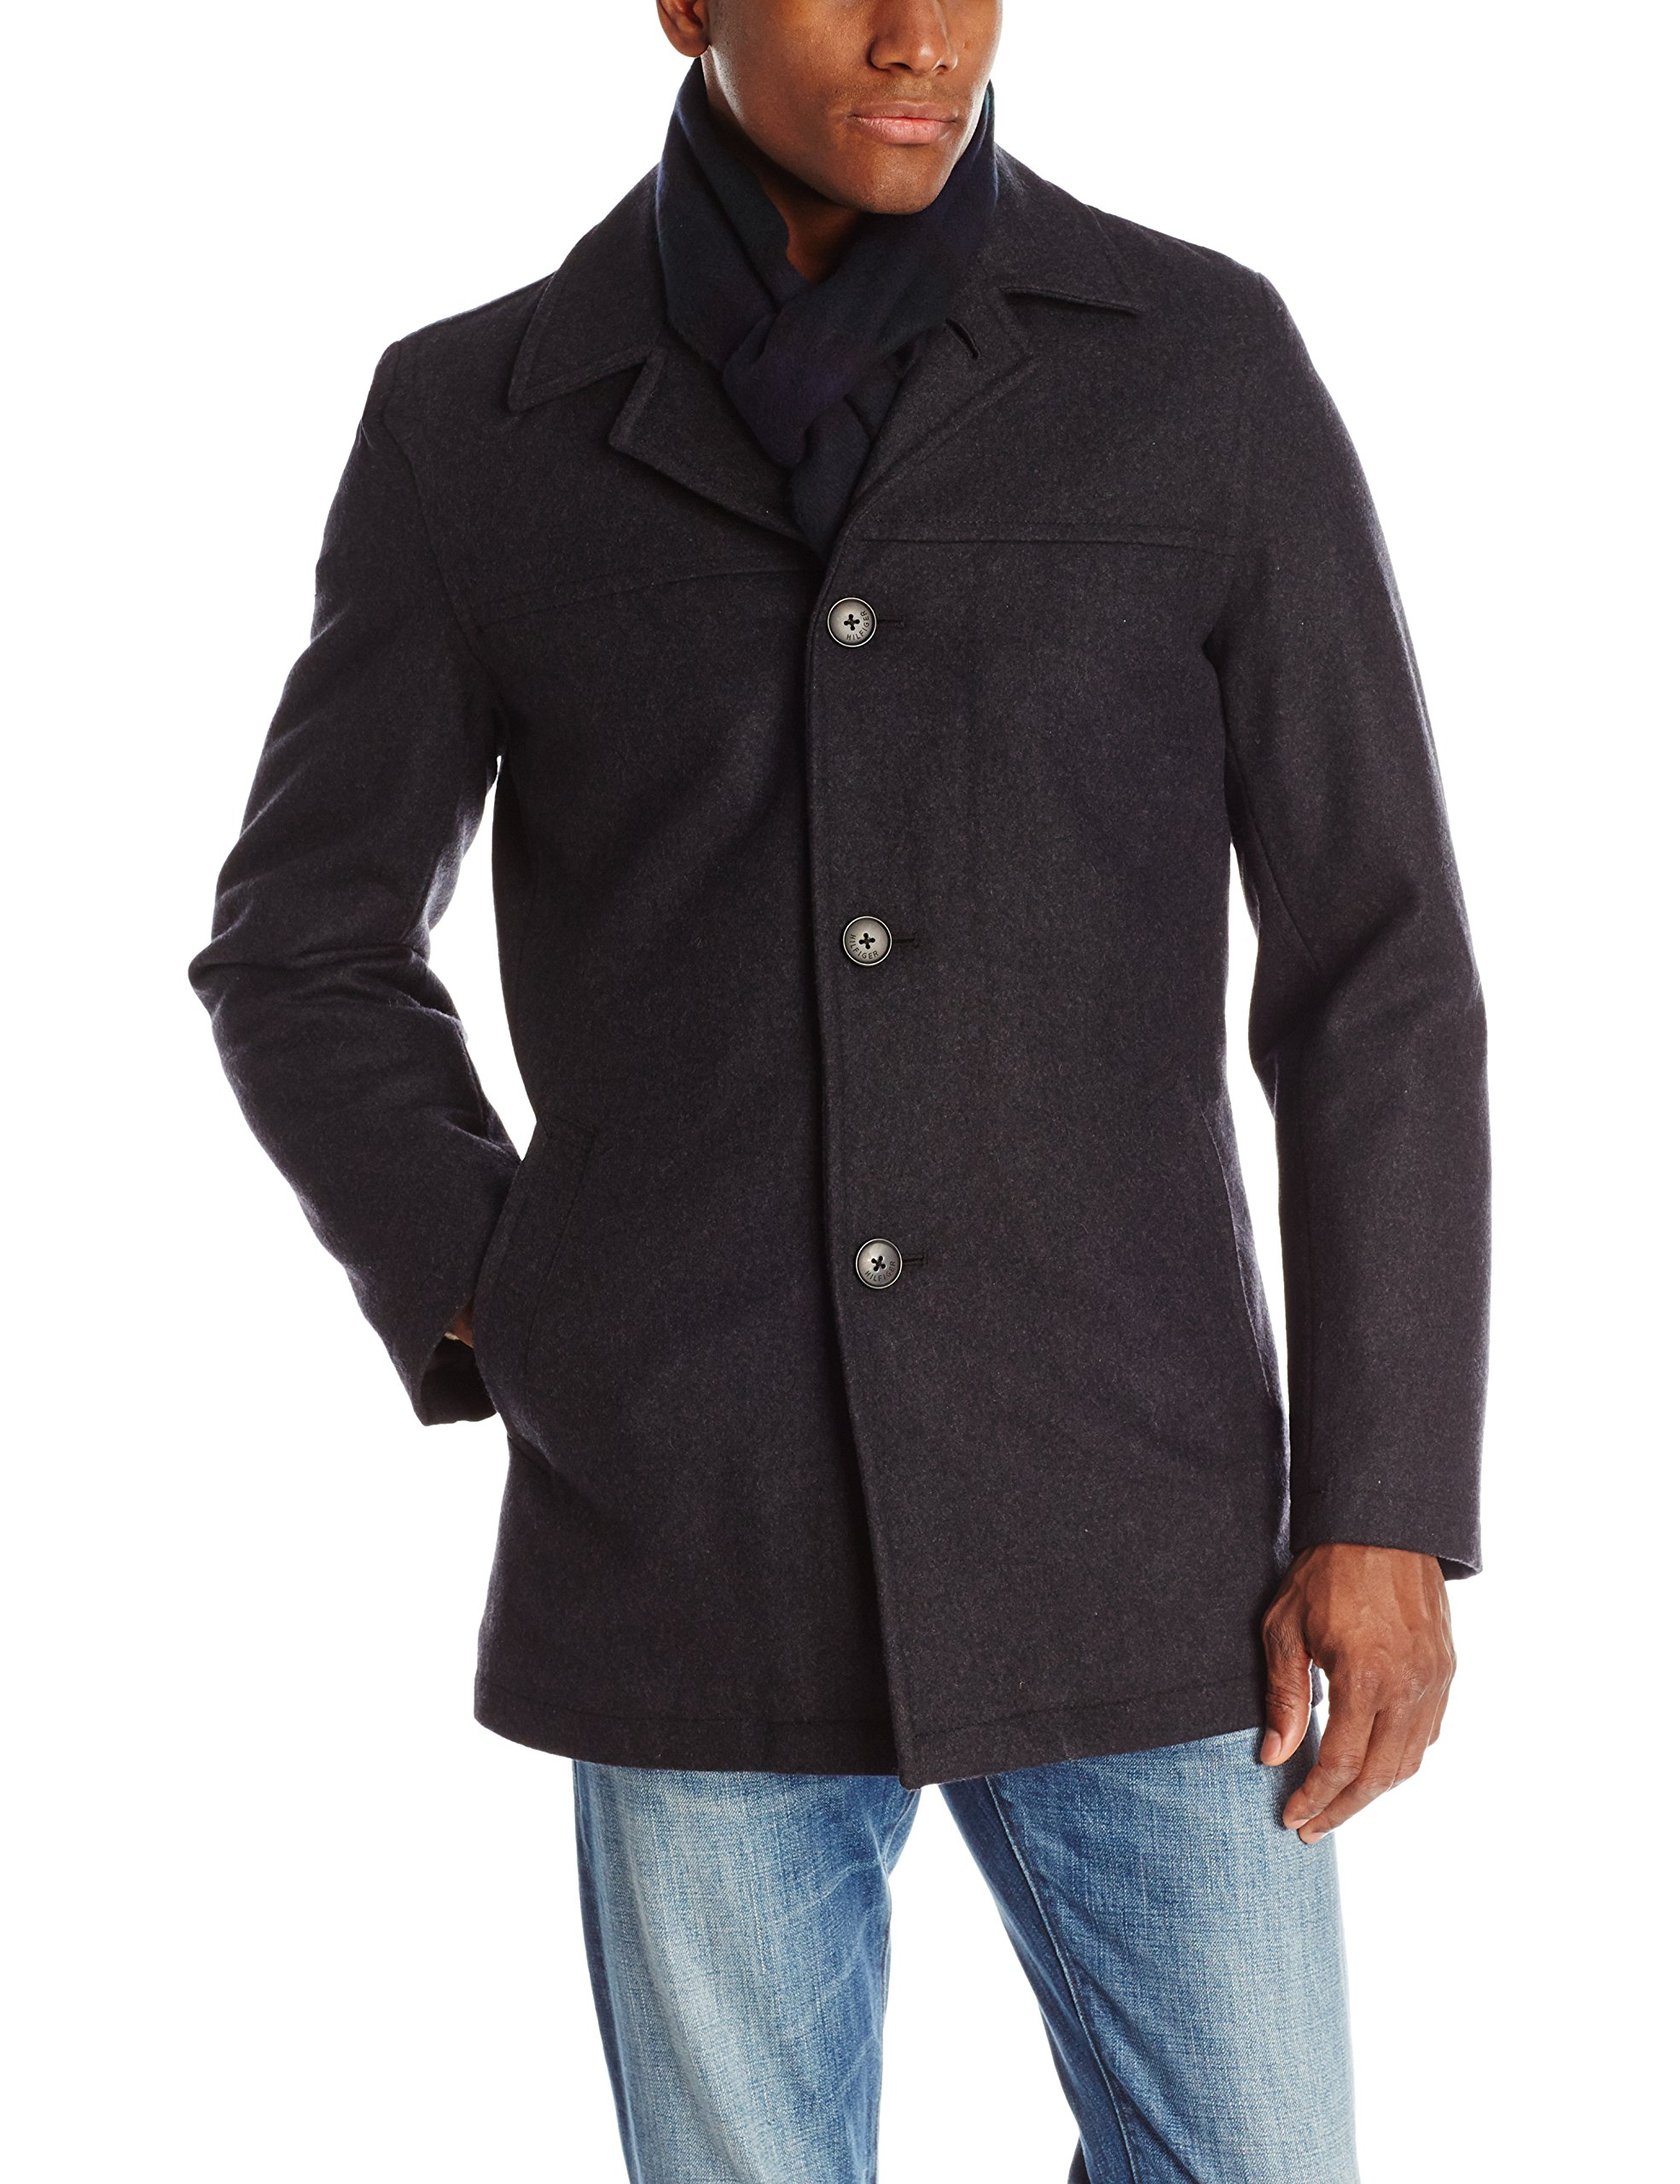 Tommy Hilfiger Men's Wool Melton Walking Coat with Detachable Scarf, Charcoal, X-Large